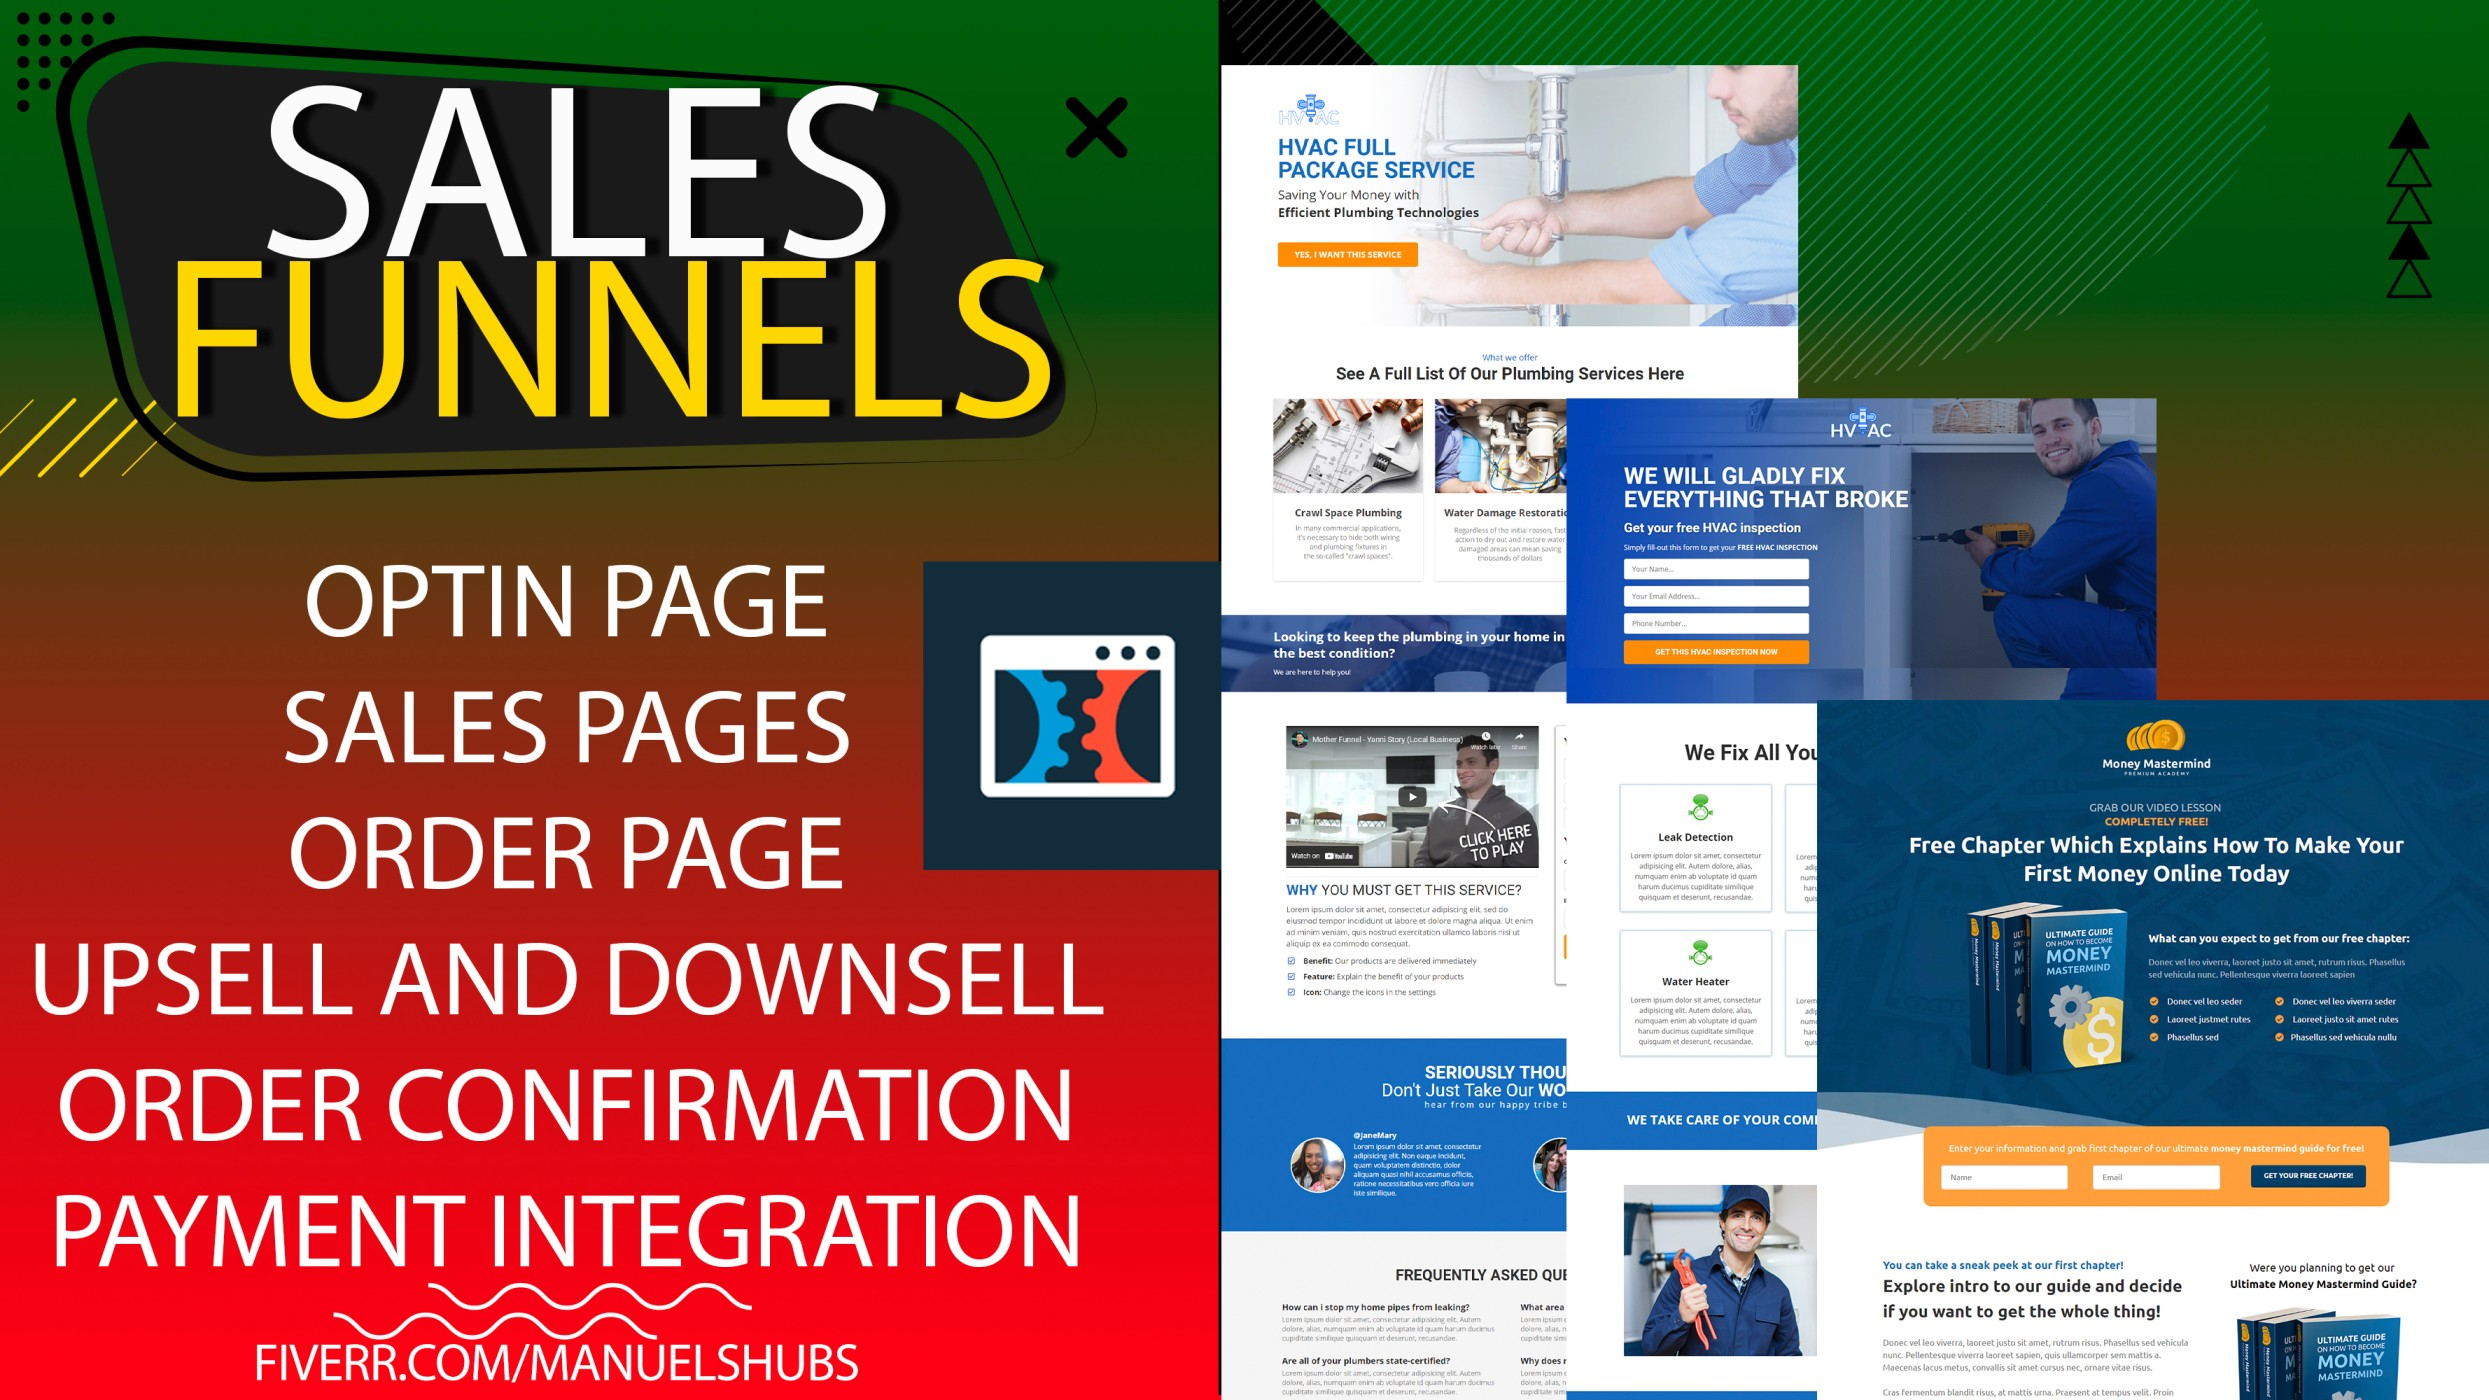 I will clickfunnels sales funnels landing page clickfunnels click funnels expert, FiverrBox